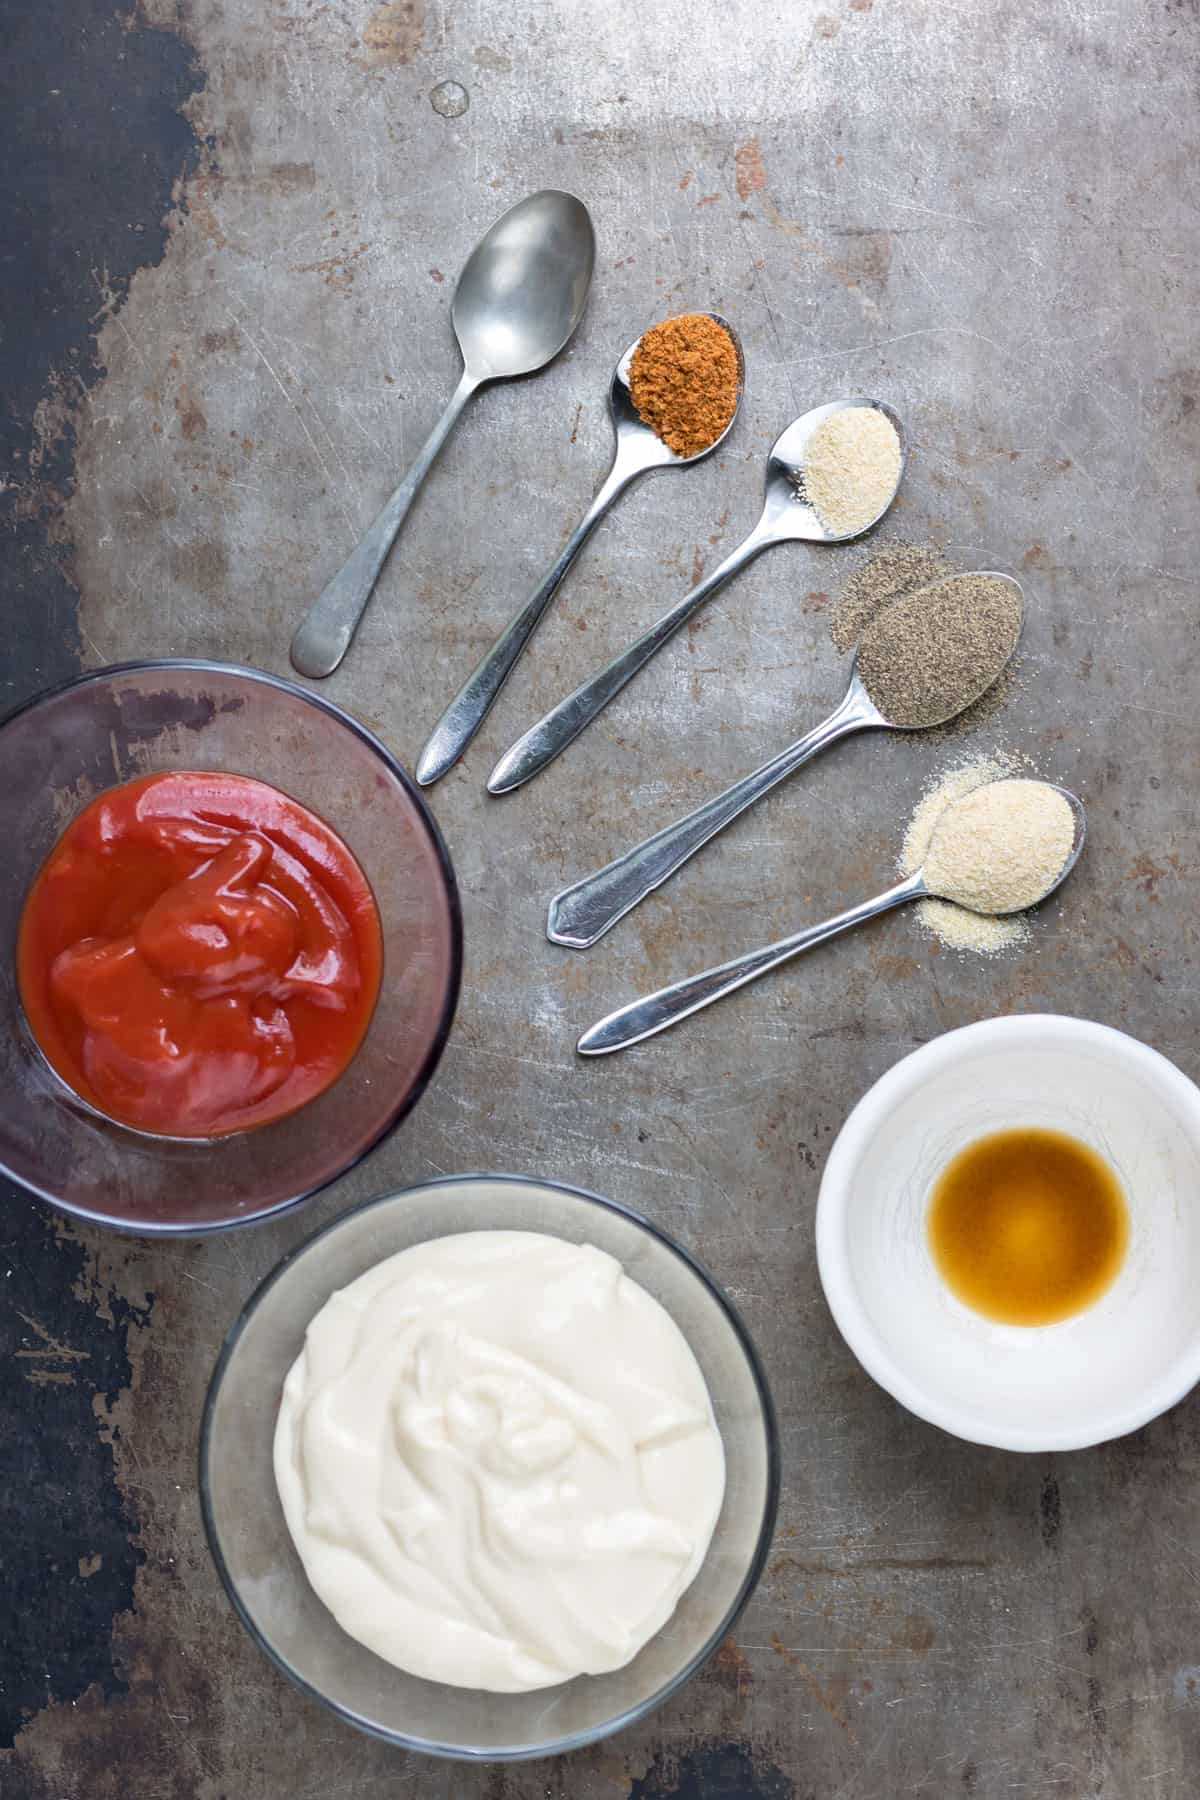 Ingredients on a table in bowls and on spoons.